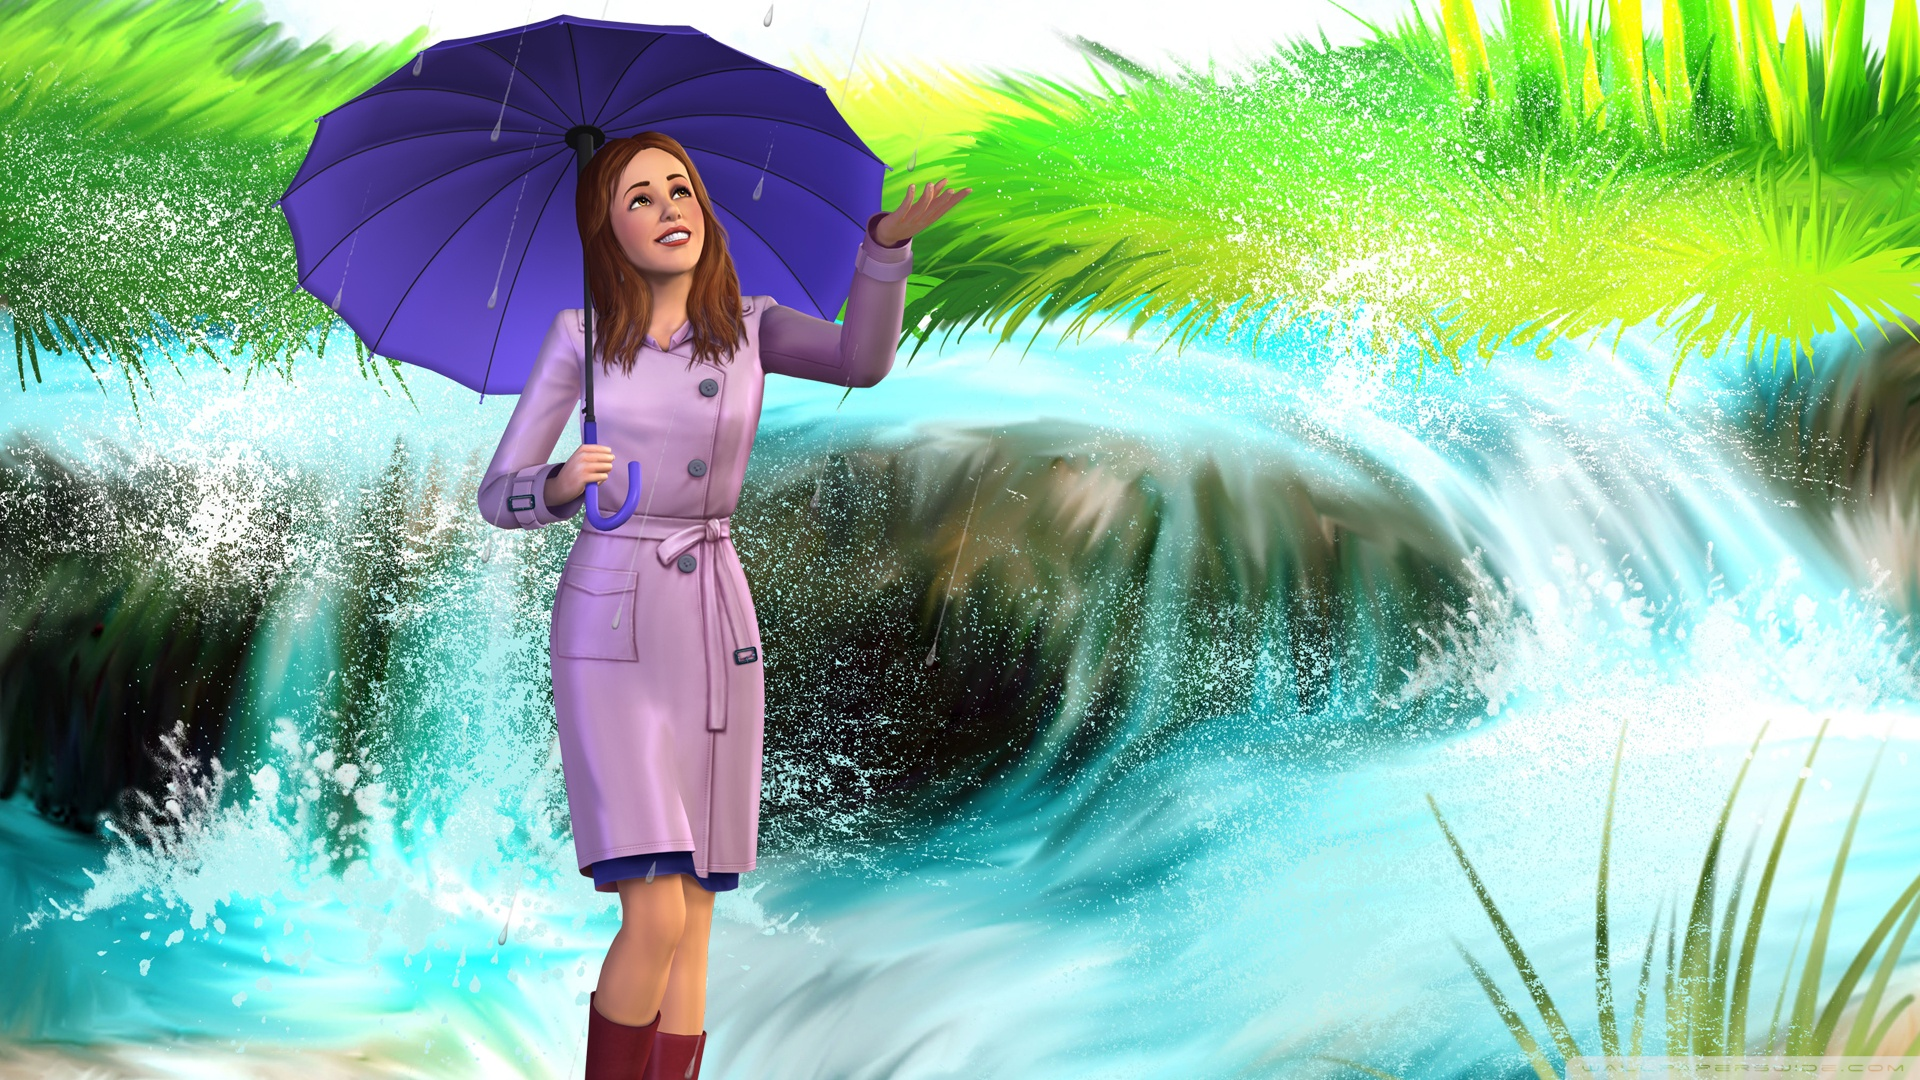 The Sims 3 Wallpaper 1920x1080 The Sims 3 1920x1080